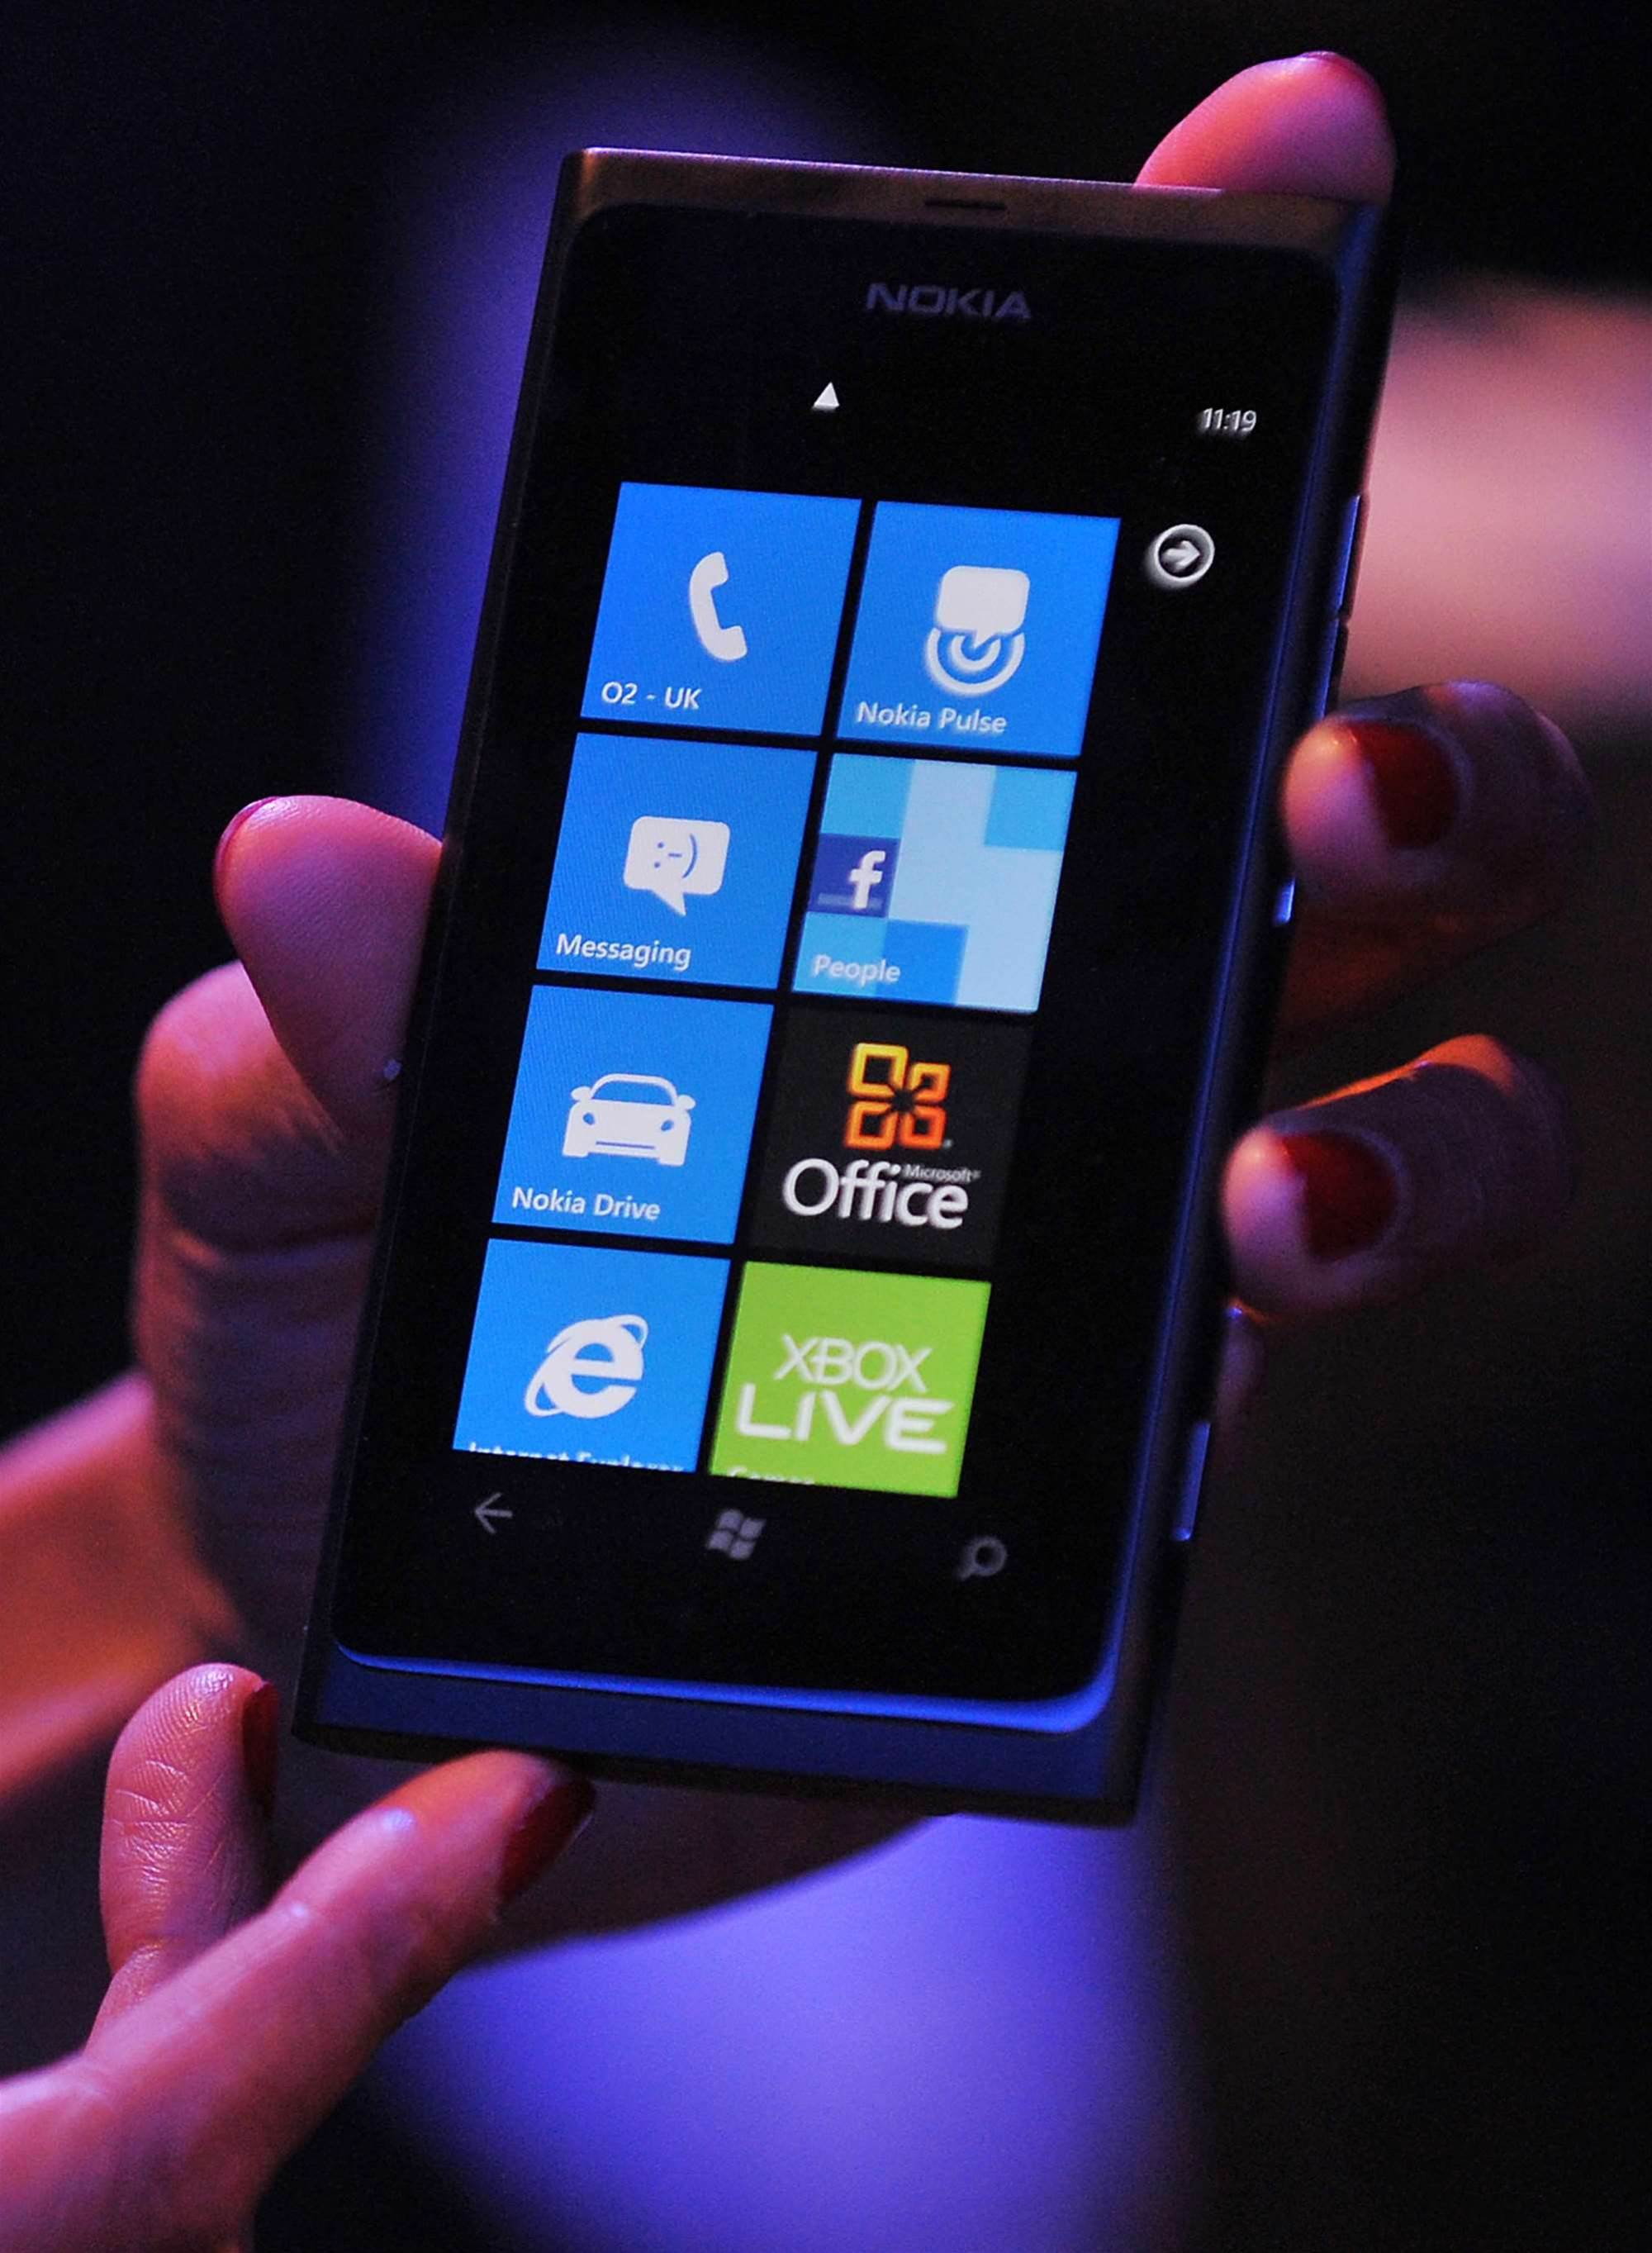 Optus targets business with Nokia Lumia launch